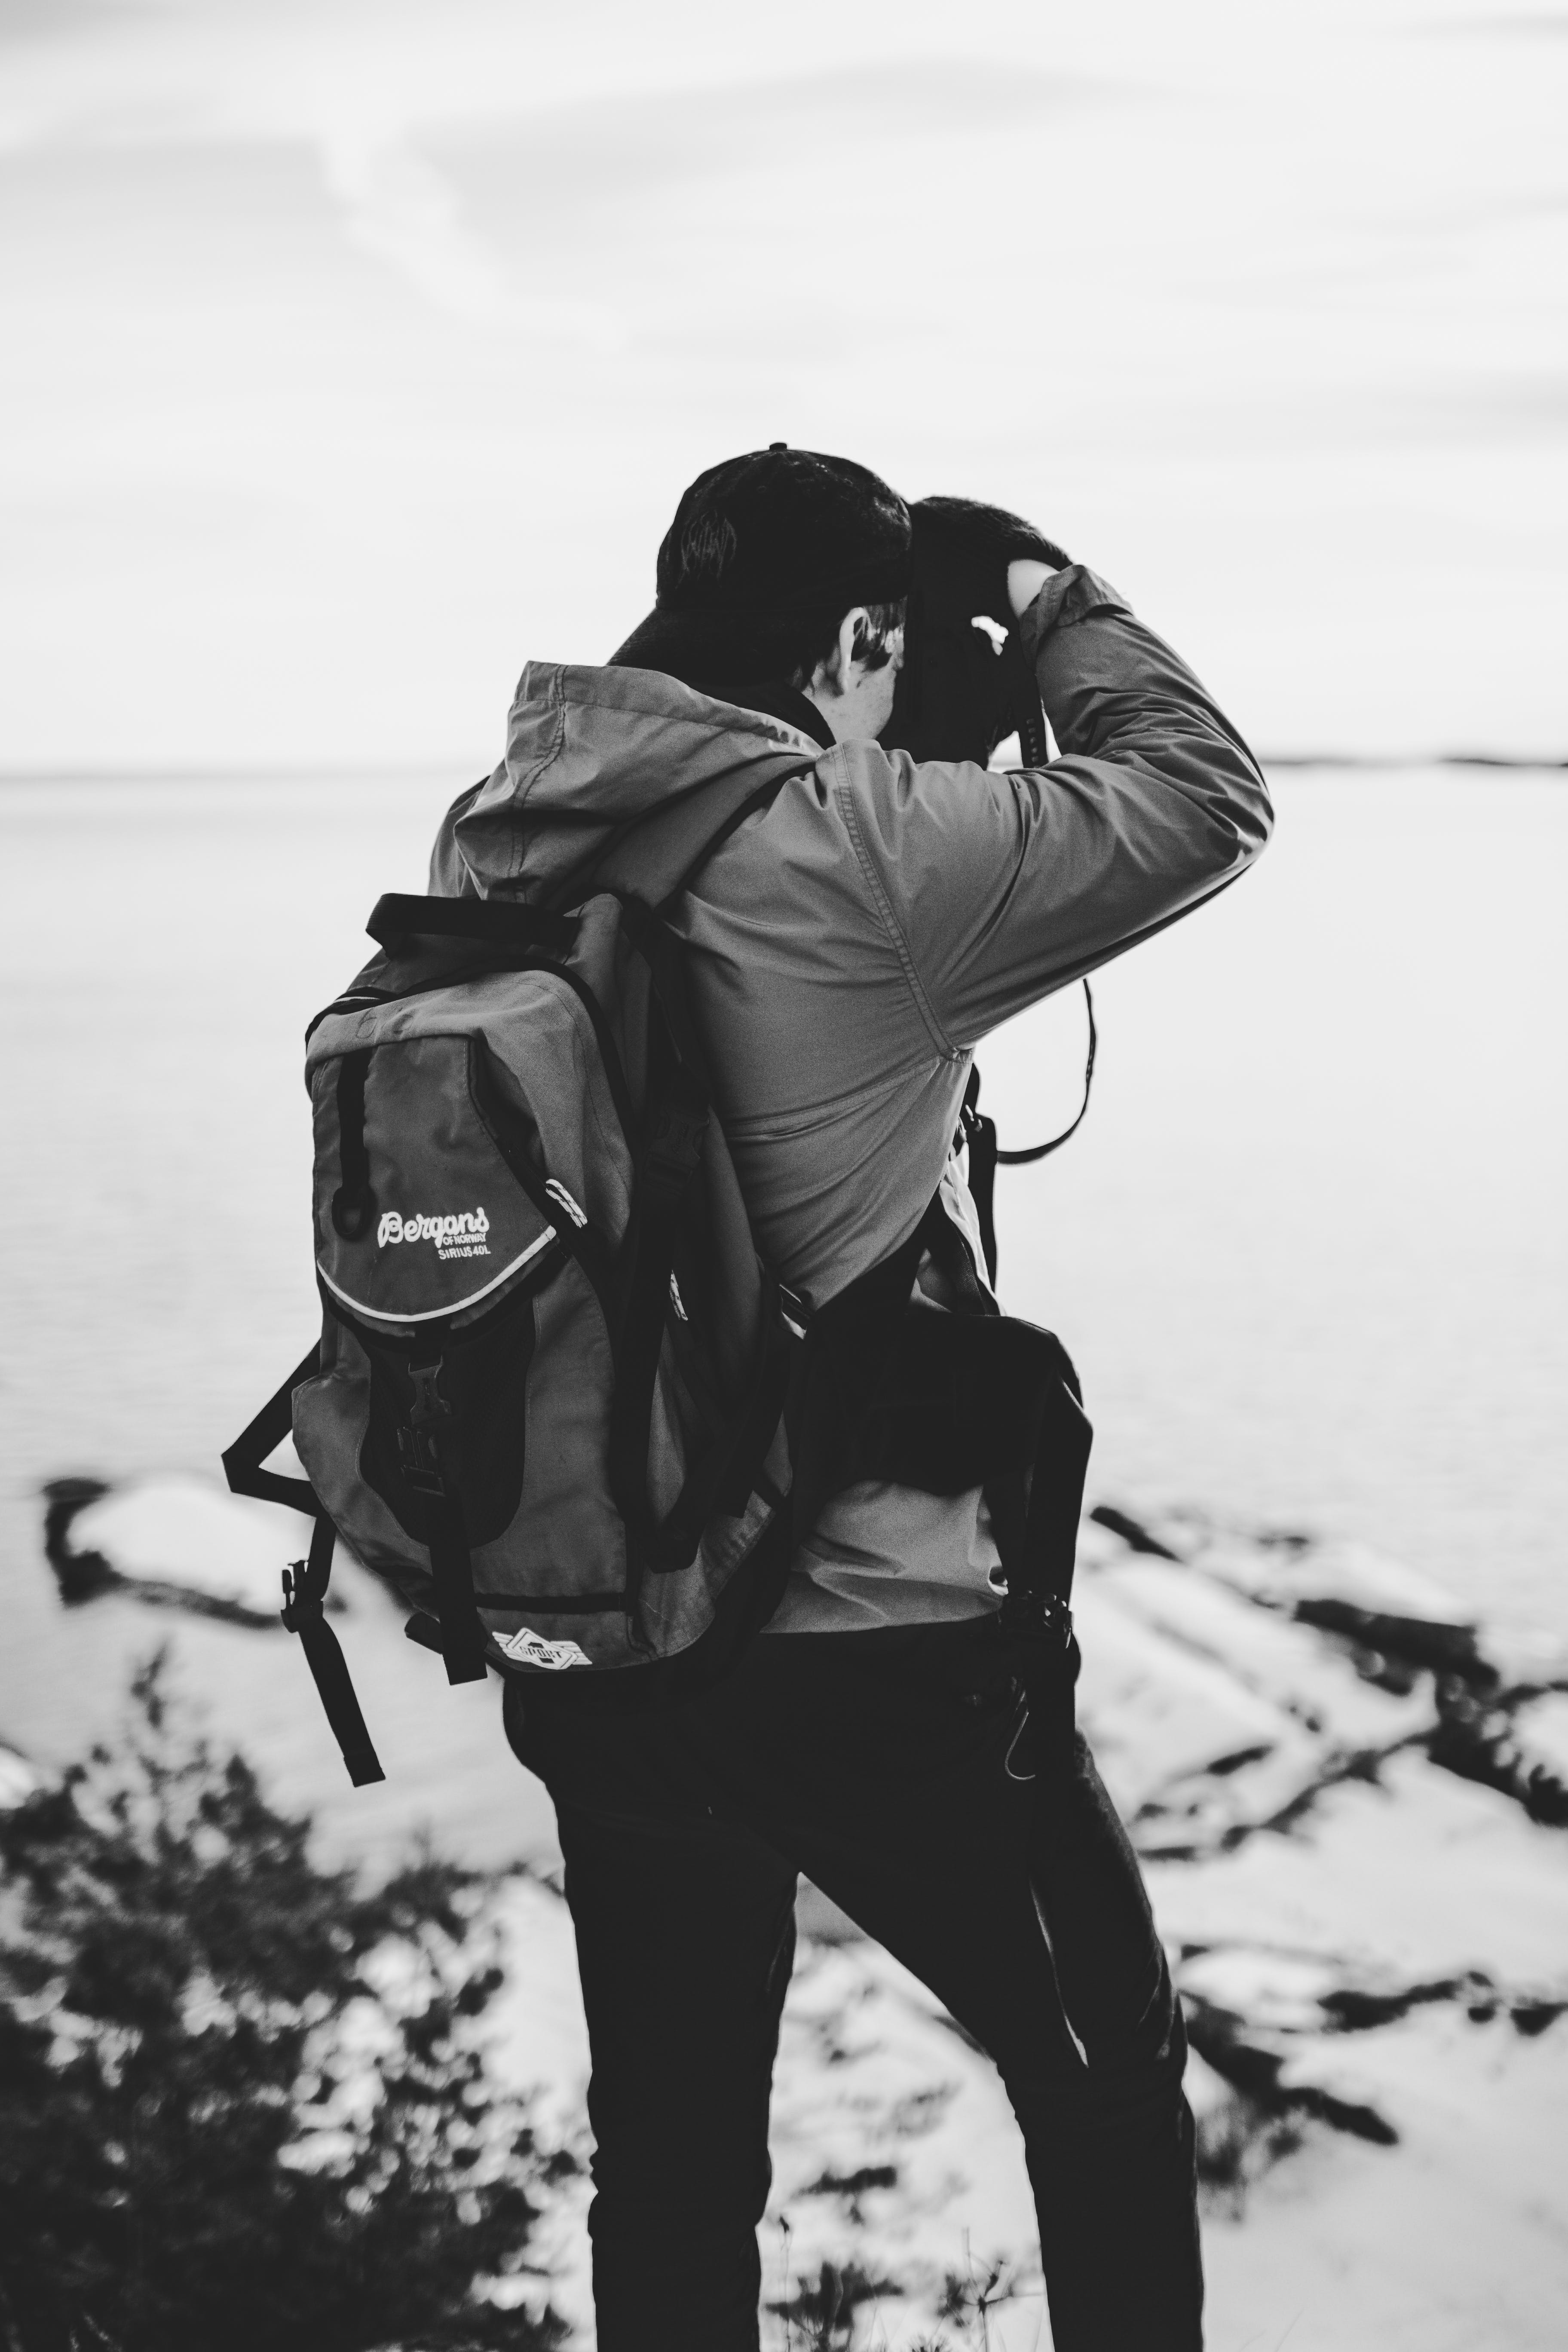 Grayscale Photography of Man Taking Photo